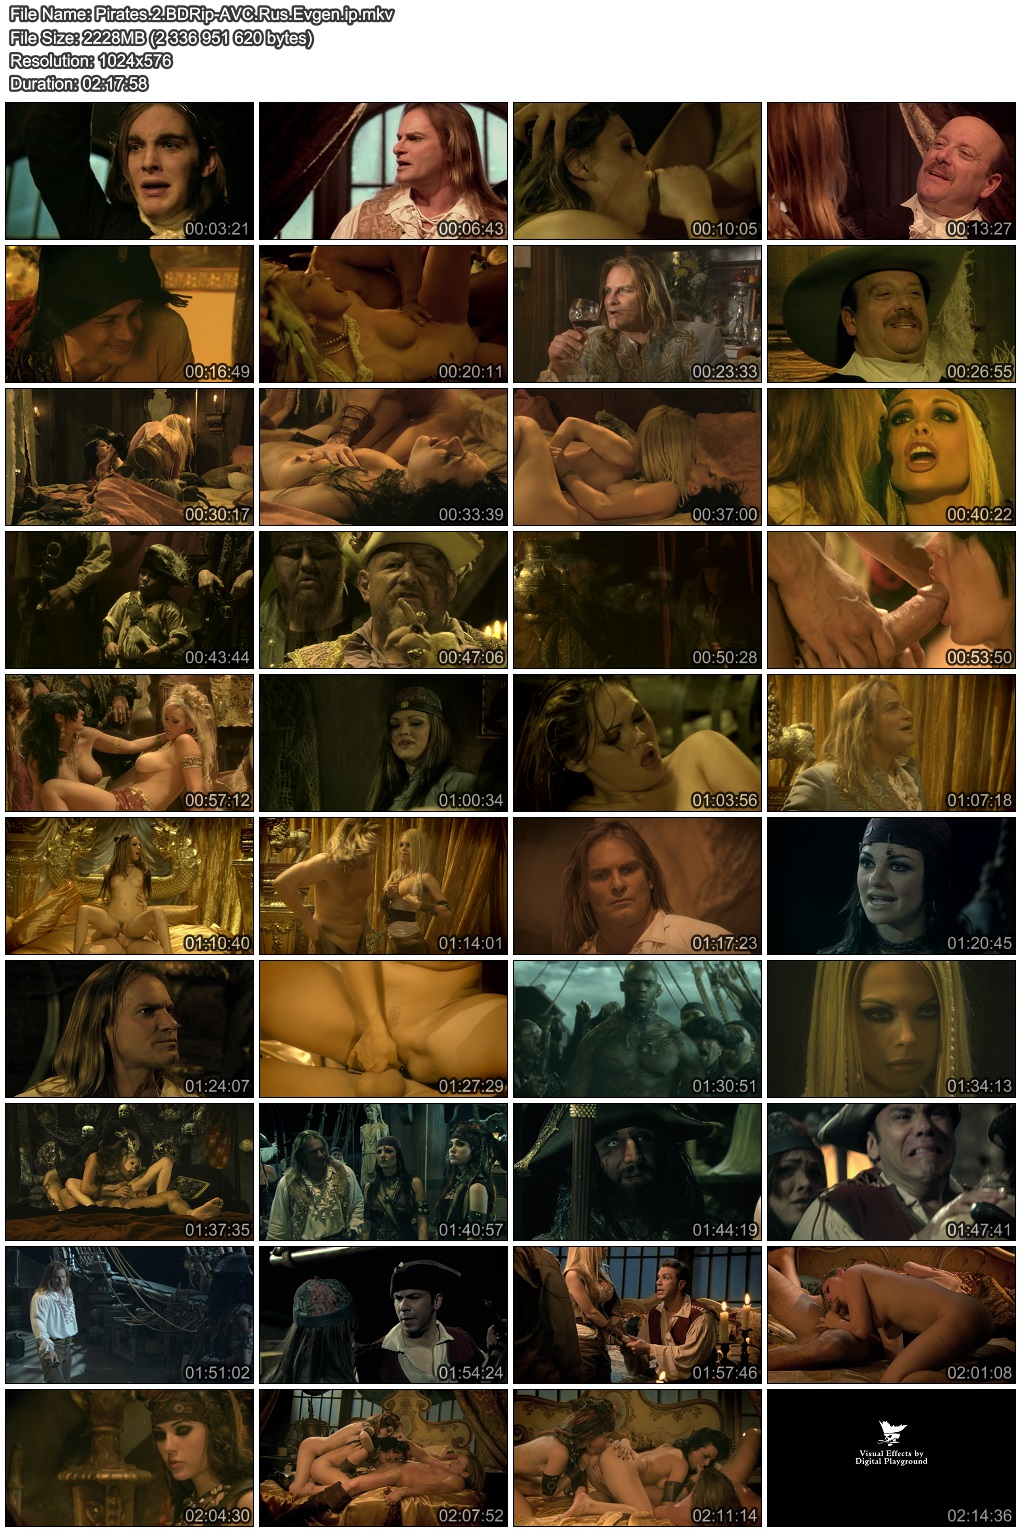 Pic pirates of carribean porn video sex galleries